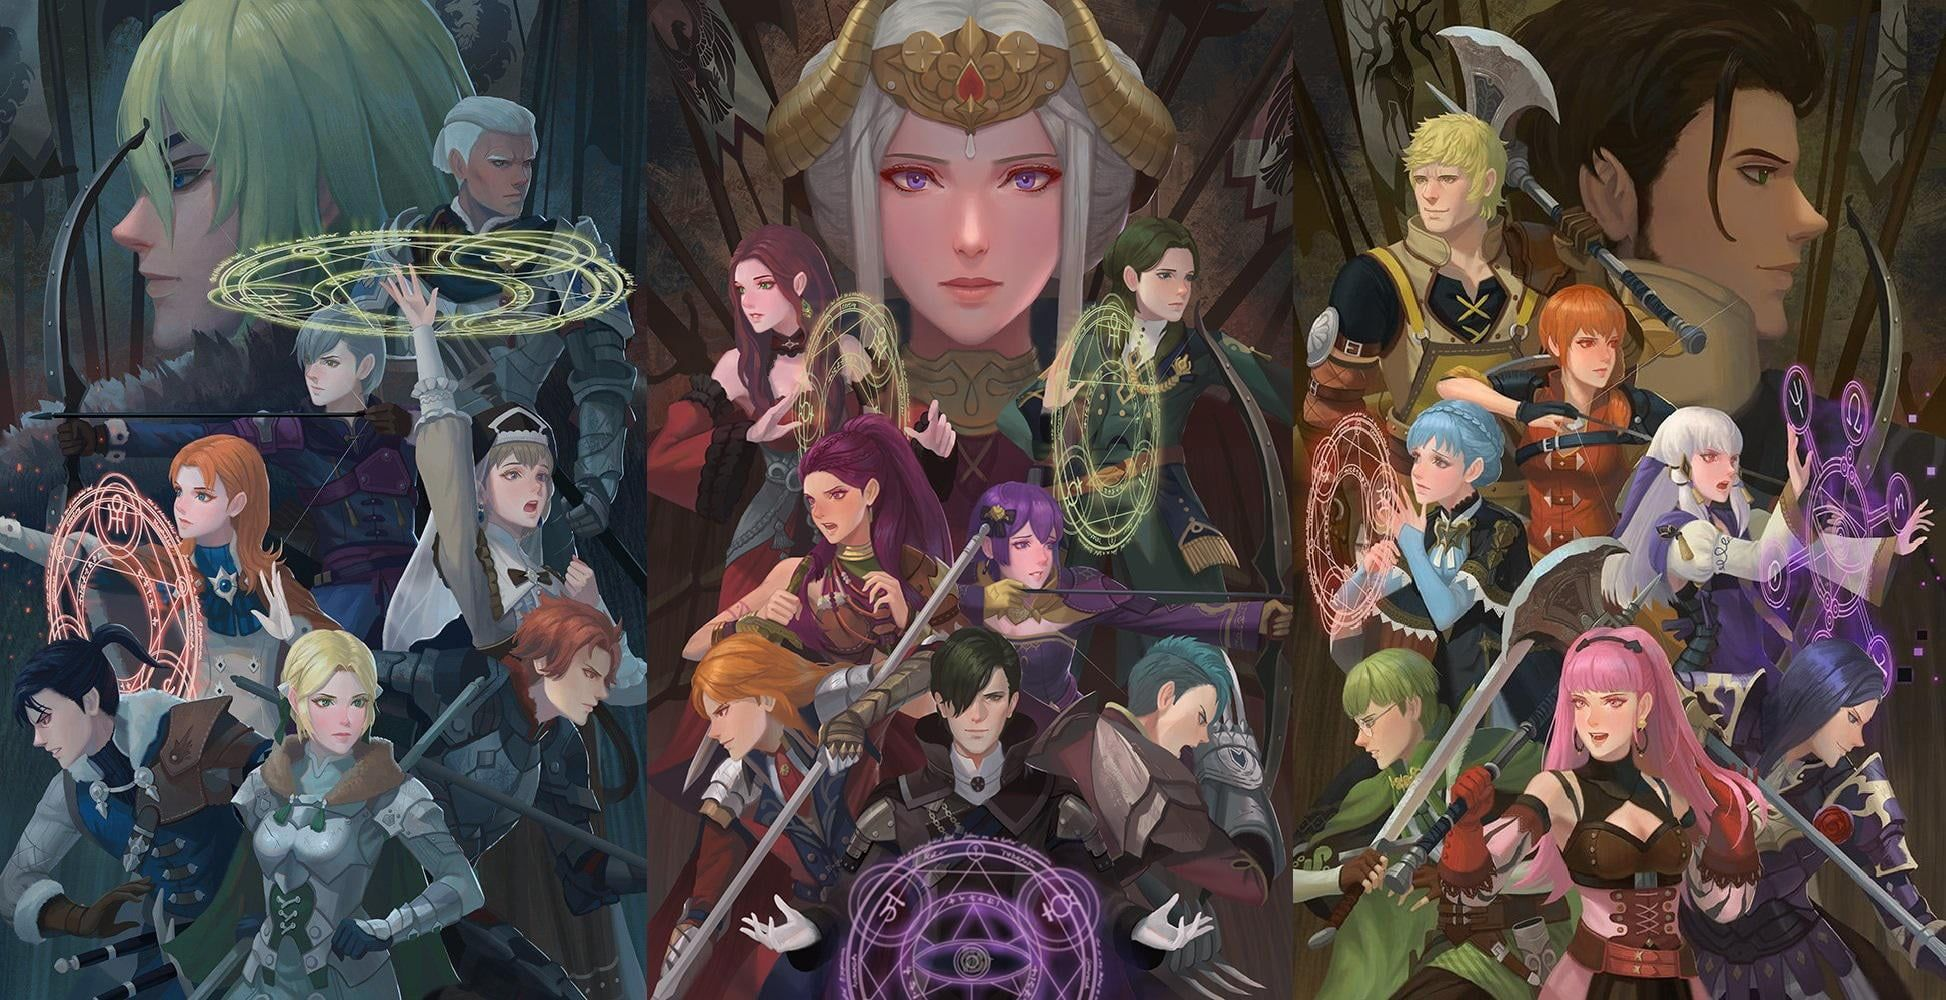 Fire Emblem Fire Emblem Three Houses Video Game Characters Video